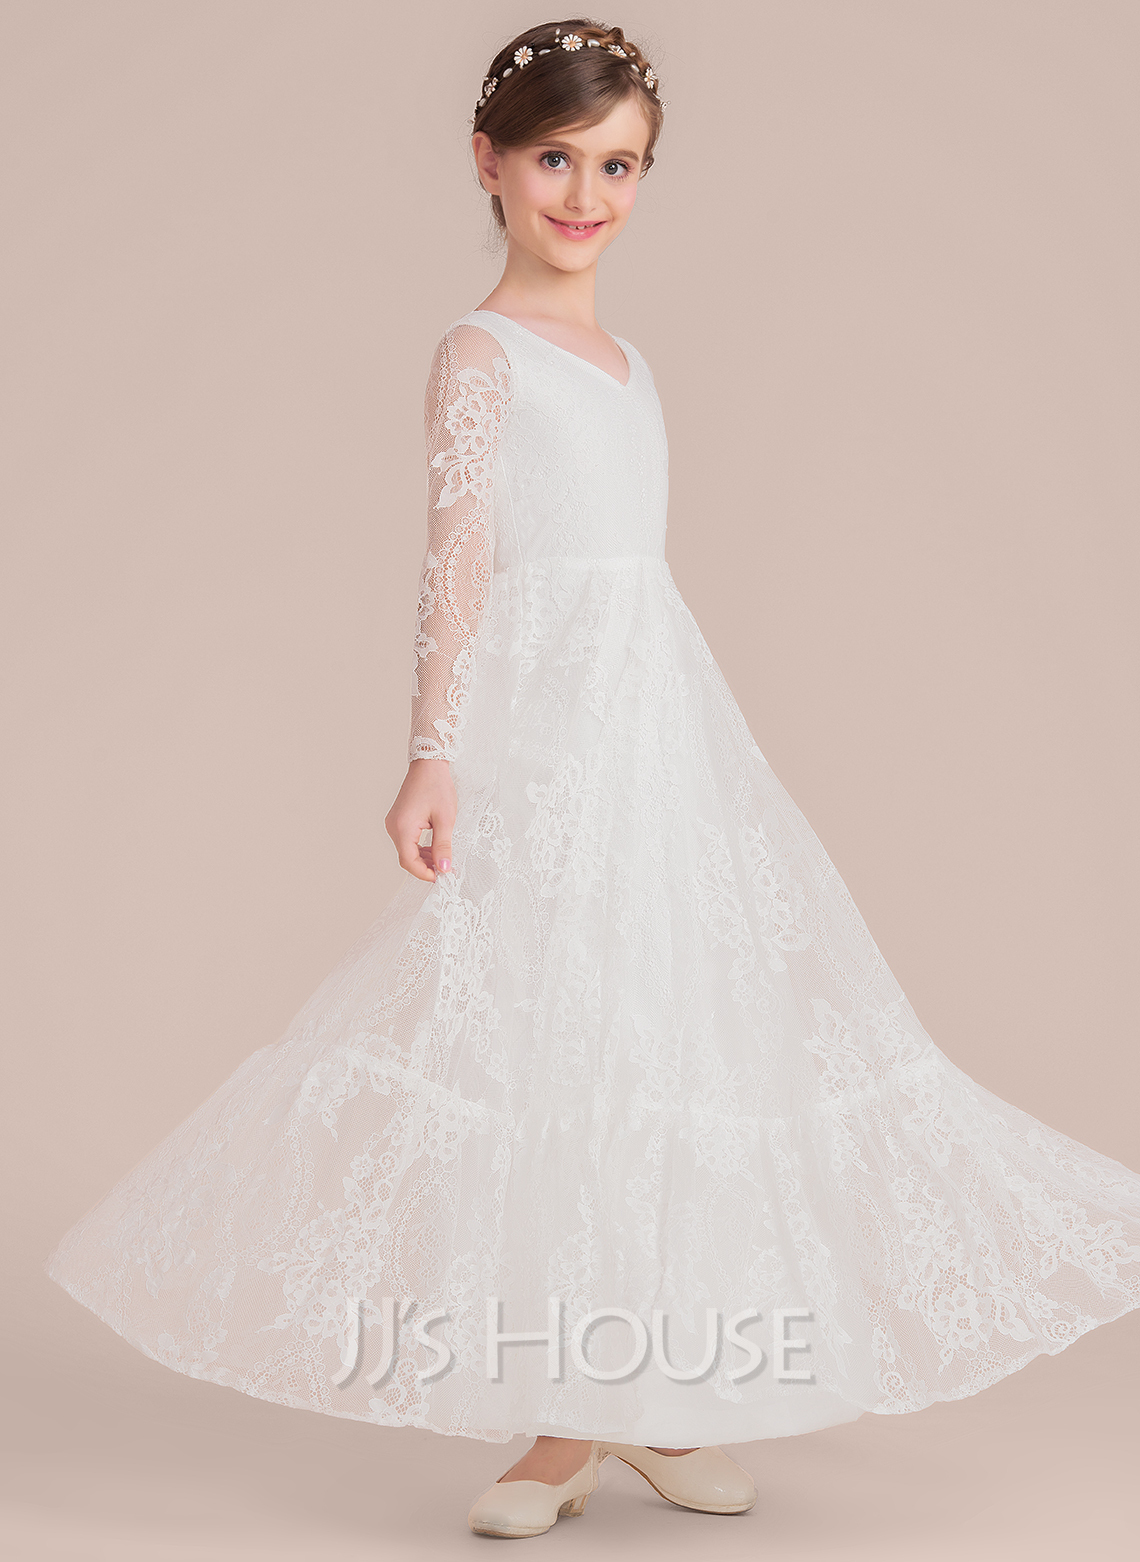 A-Line Floor-length Flower Girl Dress - Chiffon/Lace Long Sleeves V-neck/Scoop Neck